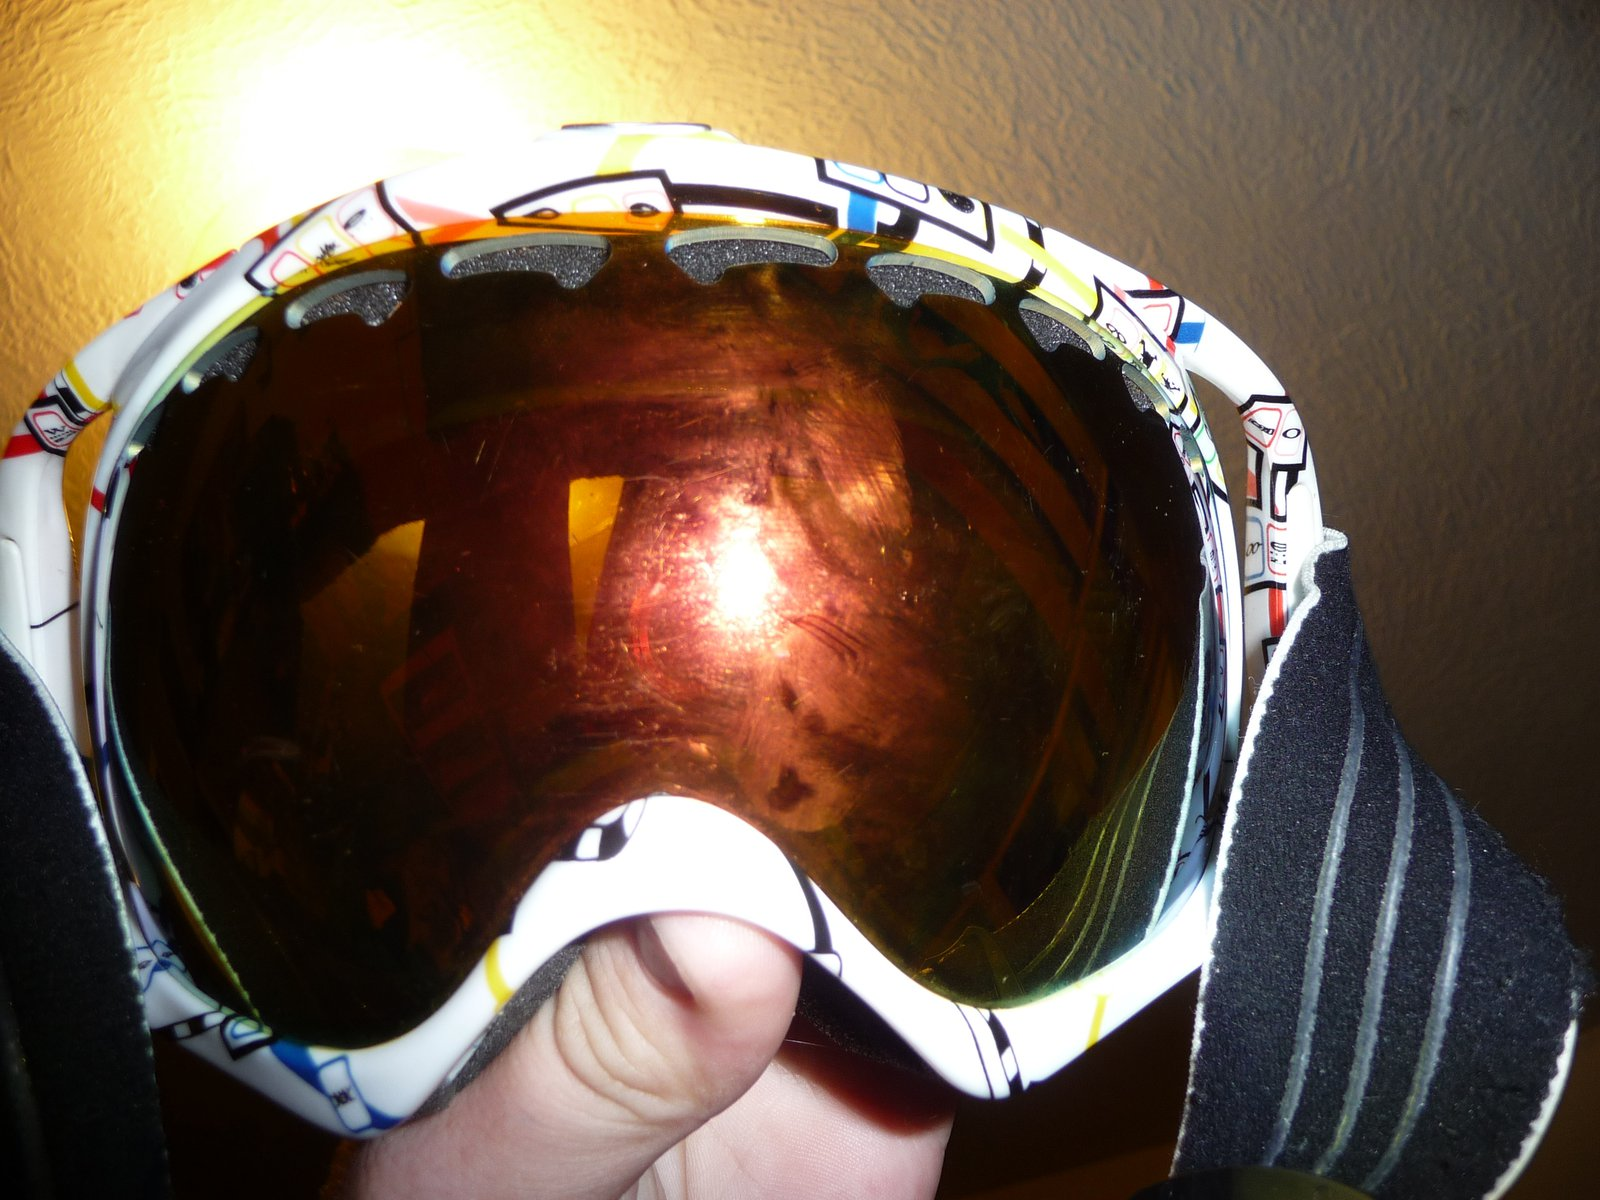 Oakley Crowbars JP Auclair.